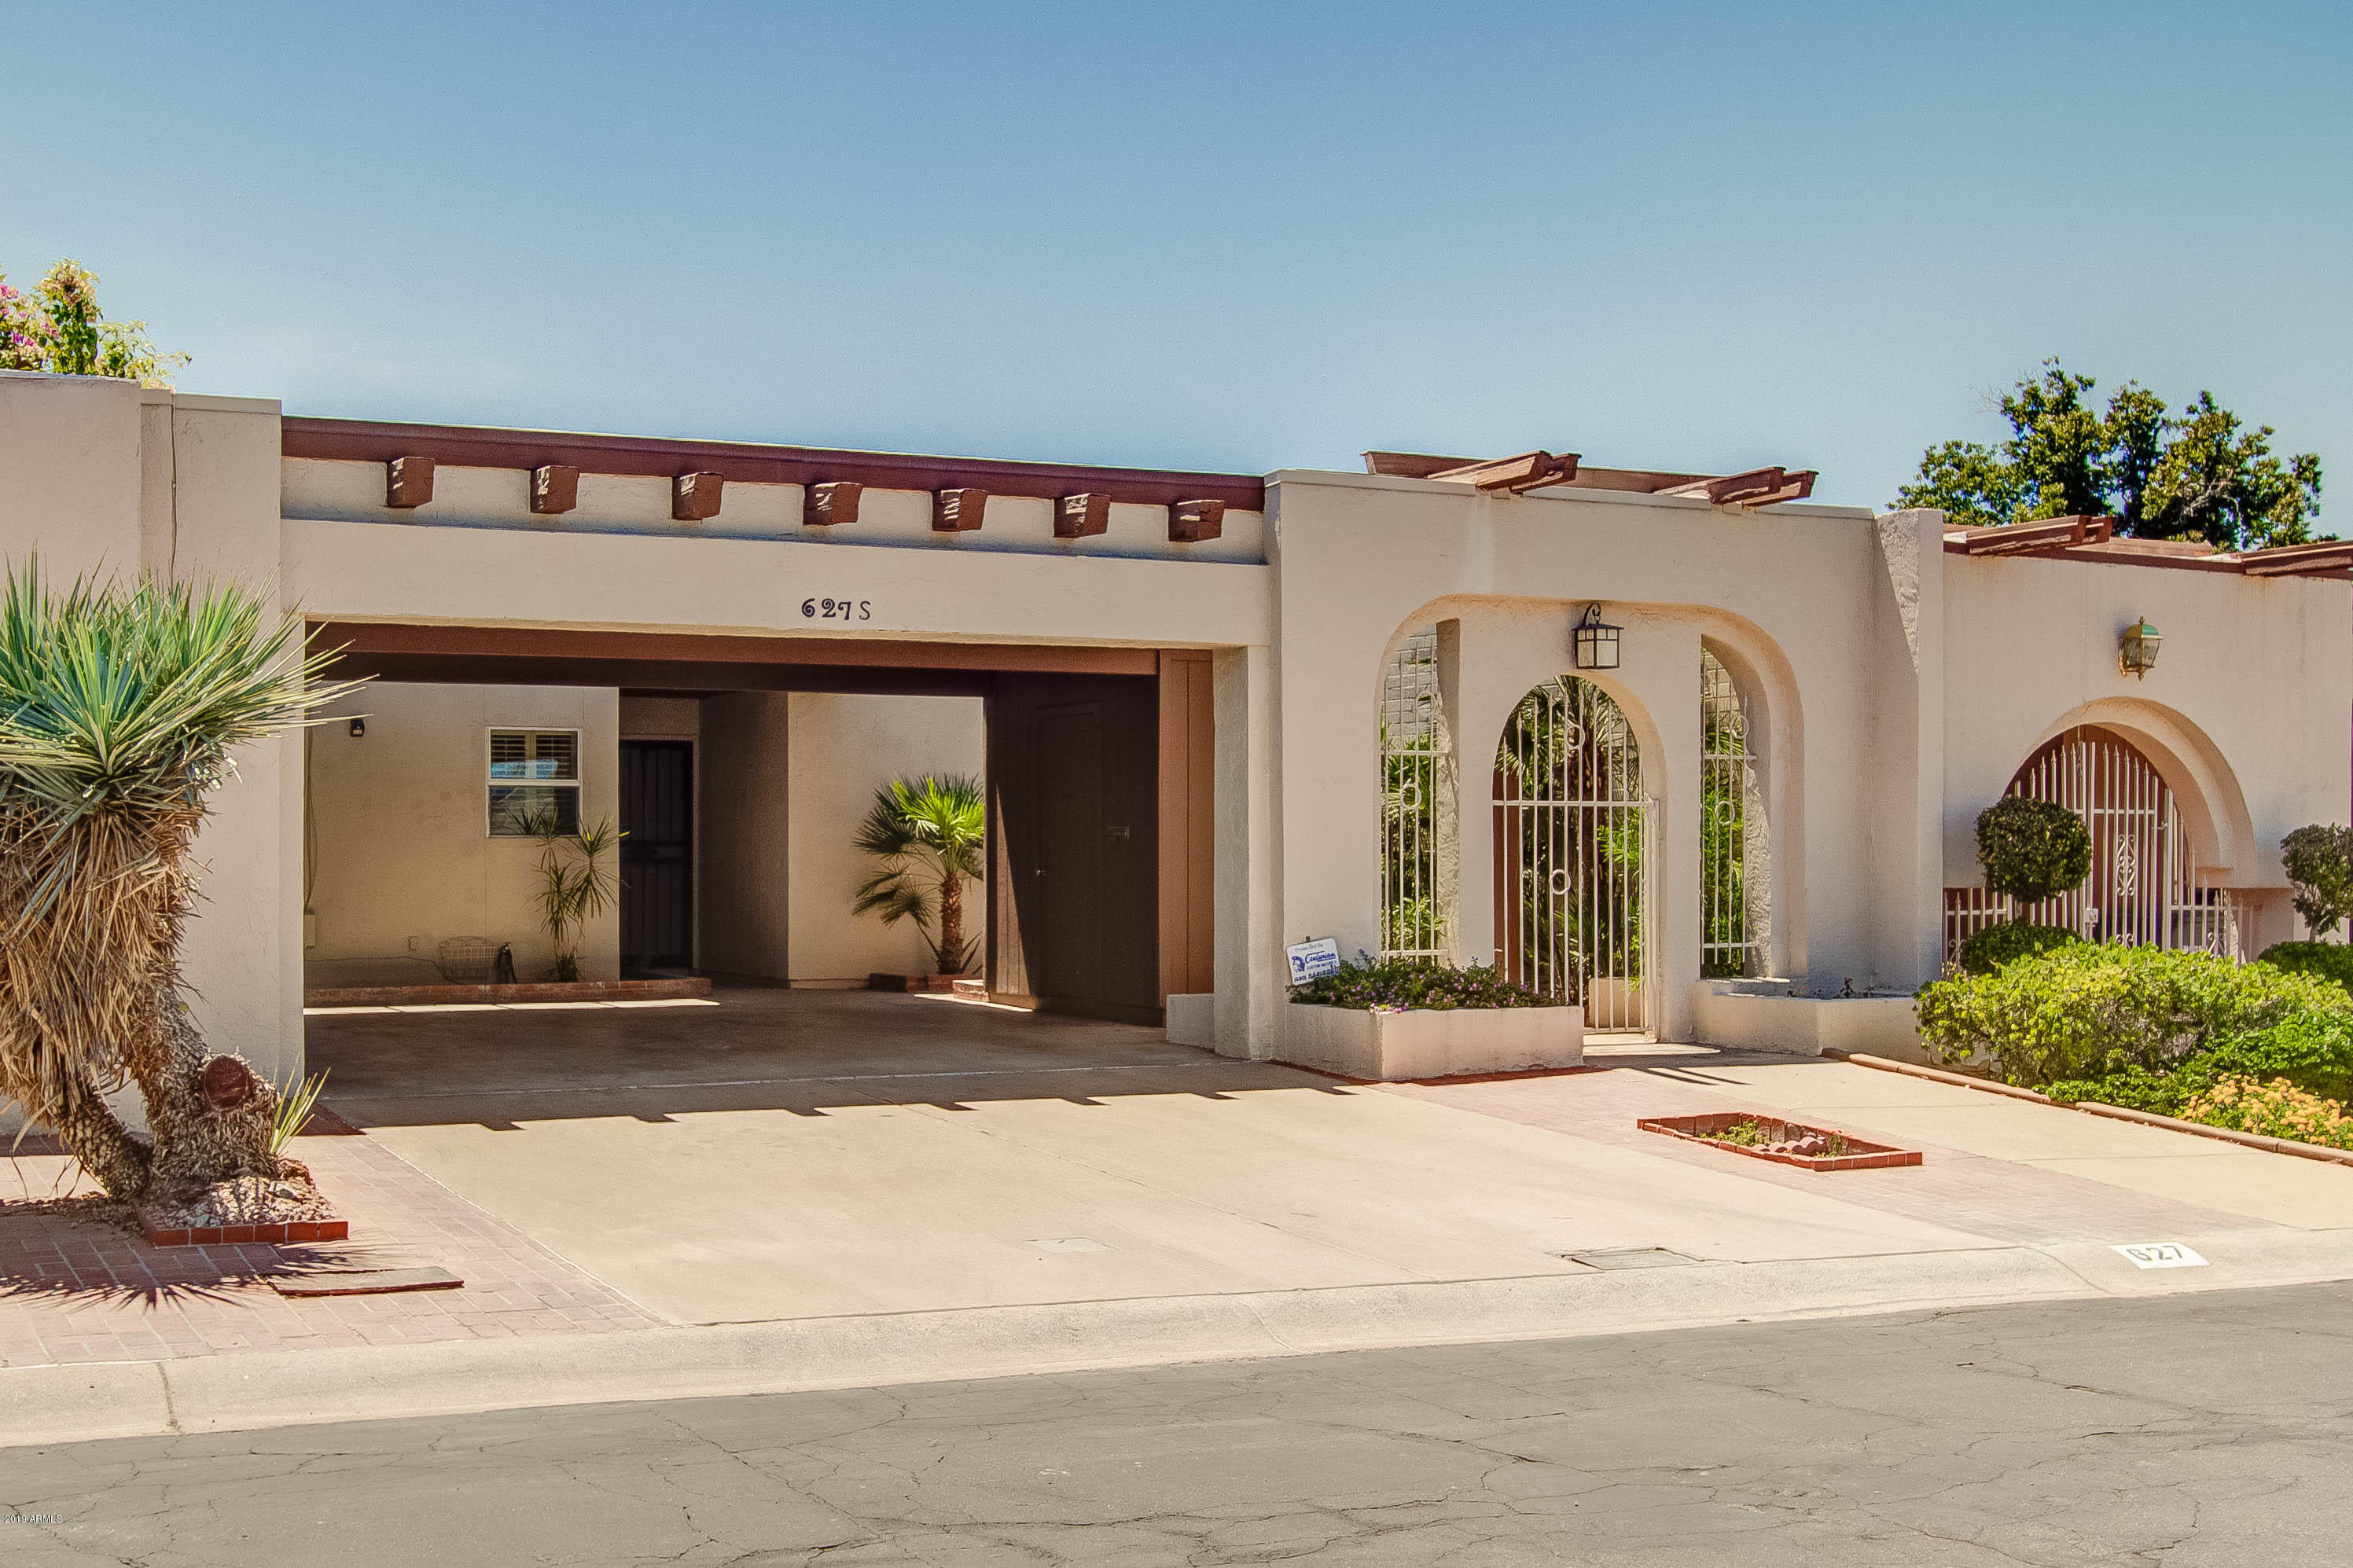 627 E ROYAL PALM Square, one of homes for sale in Phoenix North